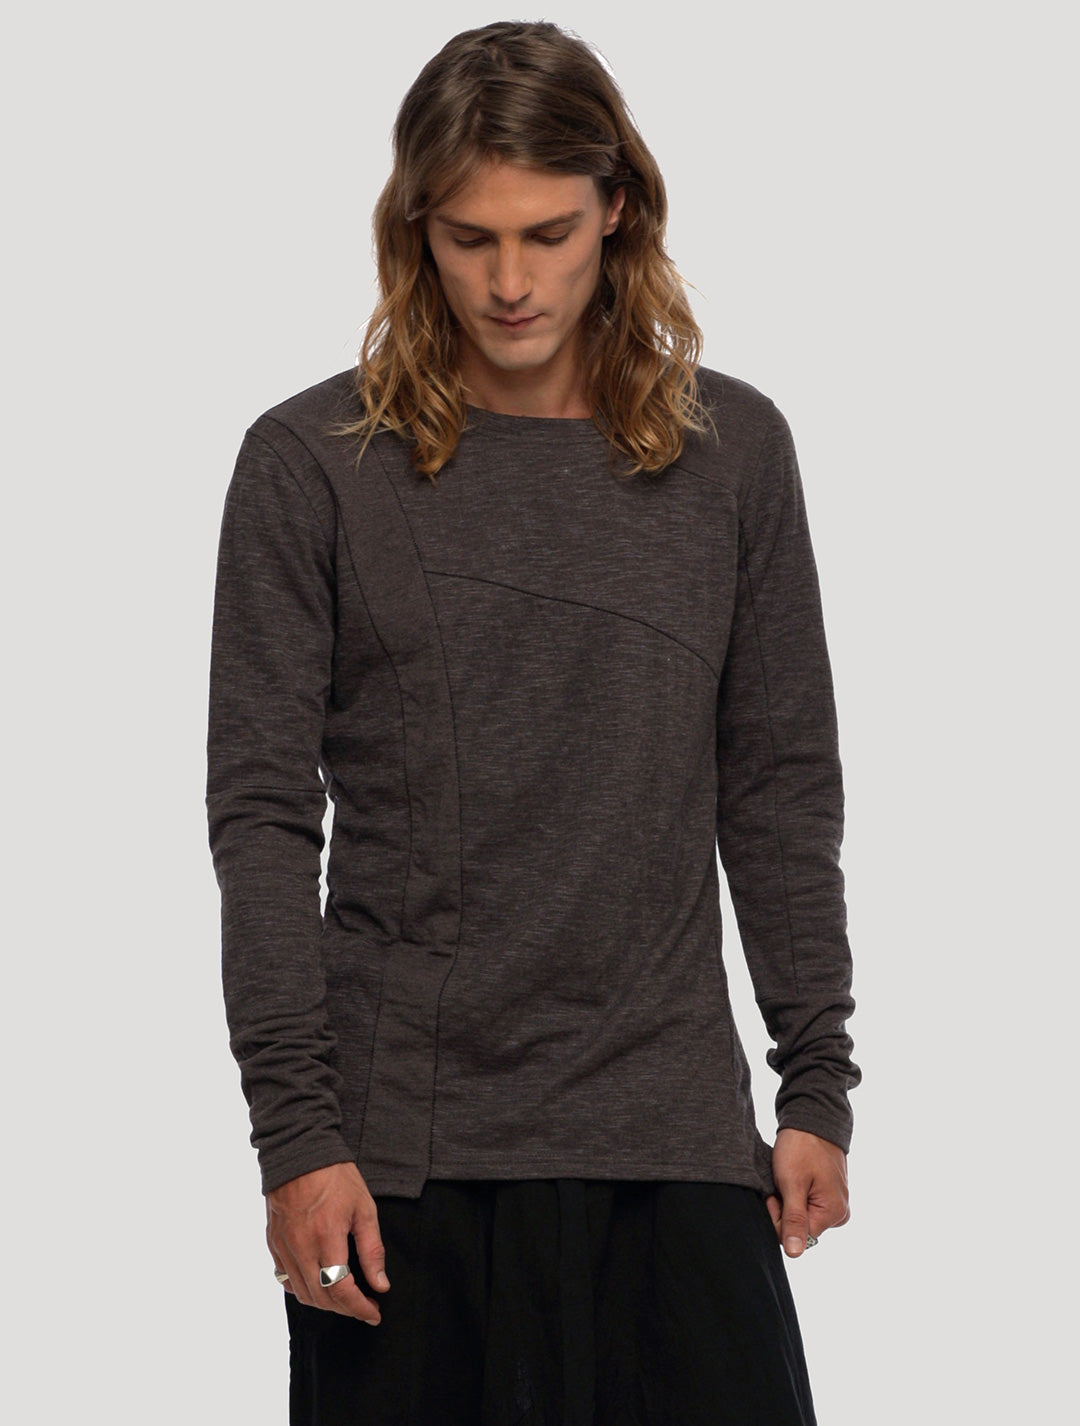 Shade Slub Sweater